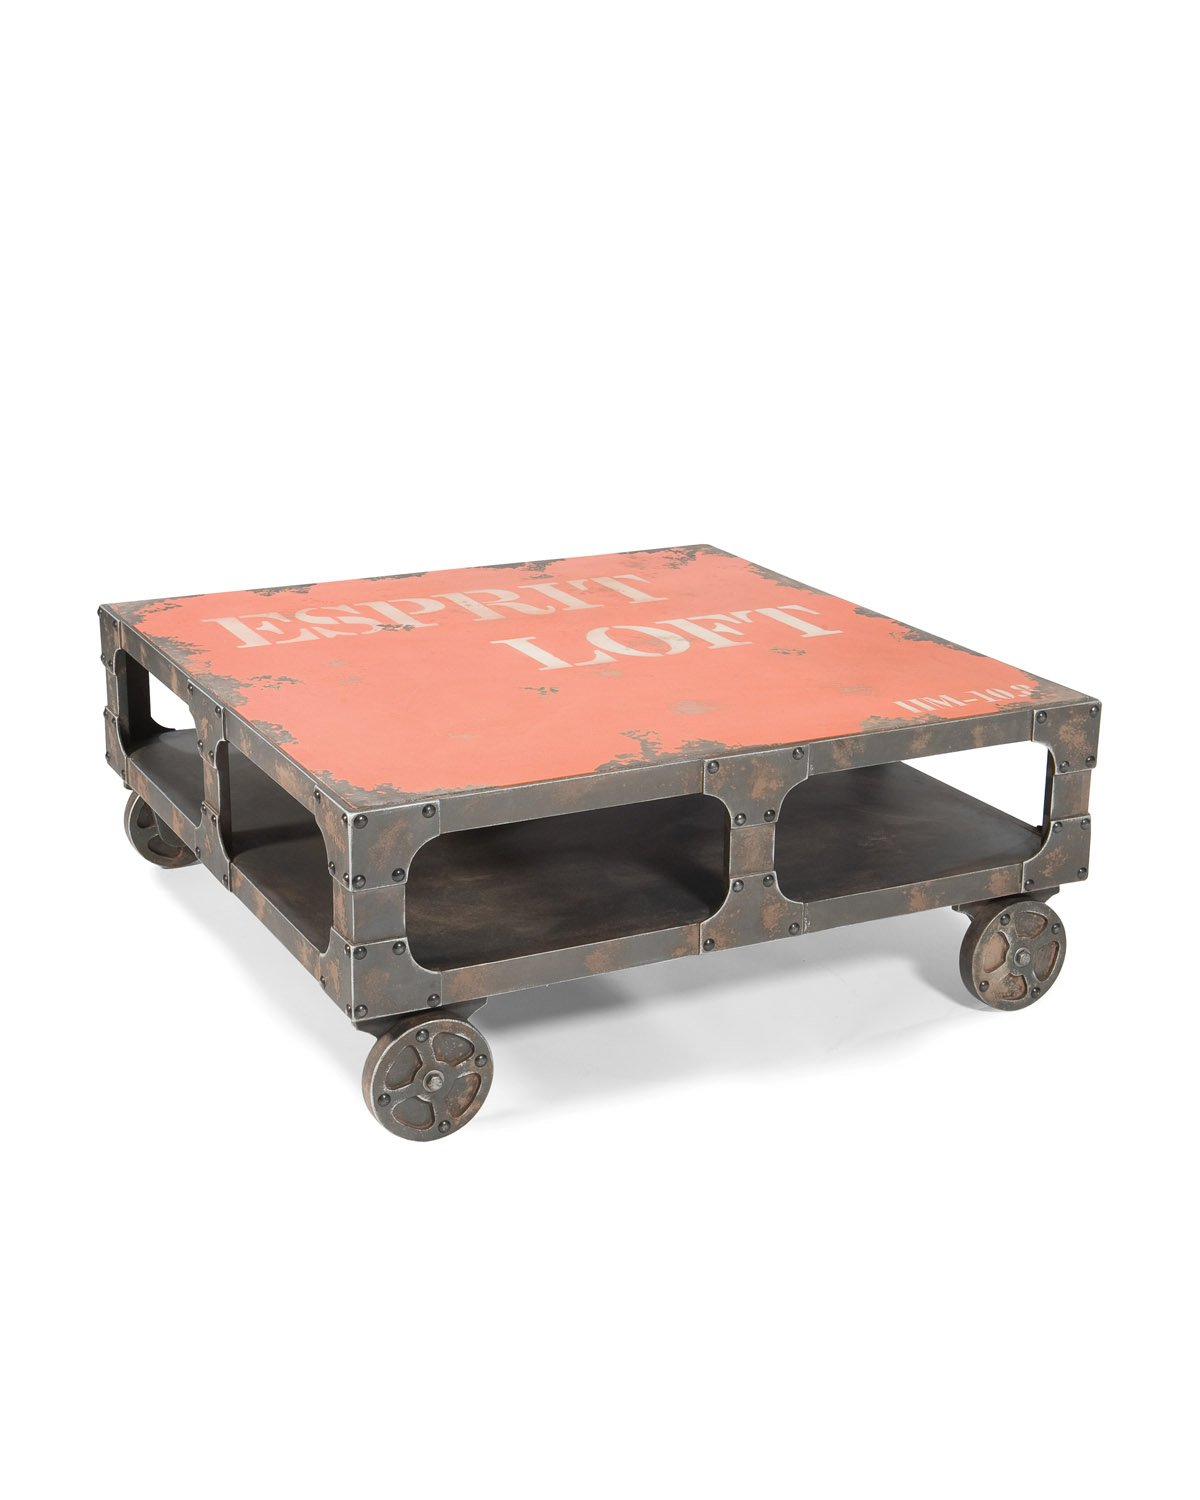 25 incredible rustic coffee table with wheels okhlitescom for Rustic coffee table with casters